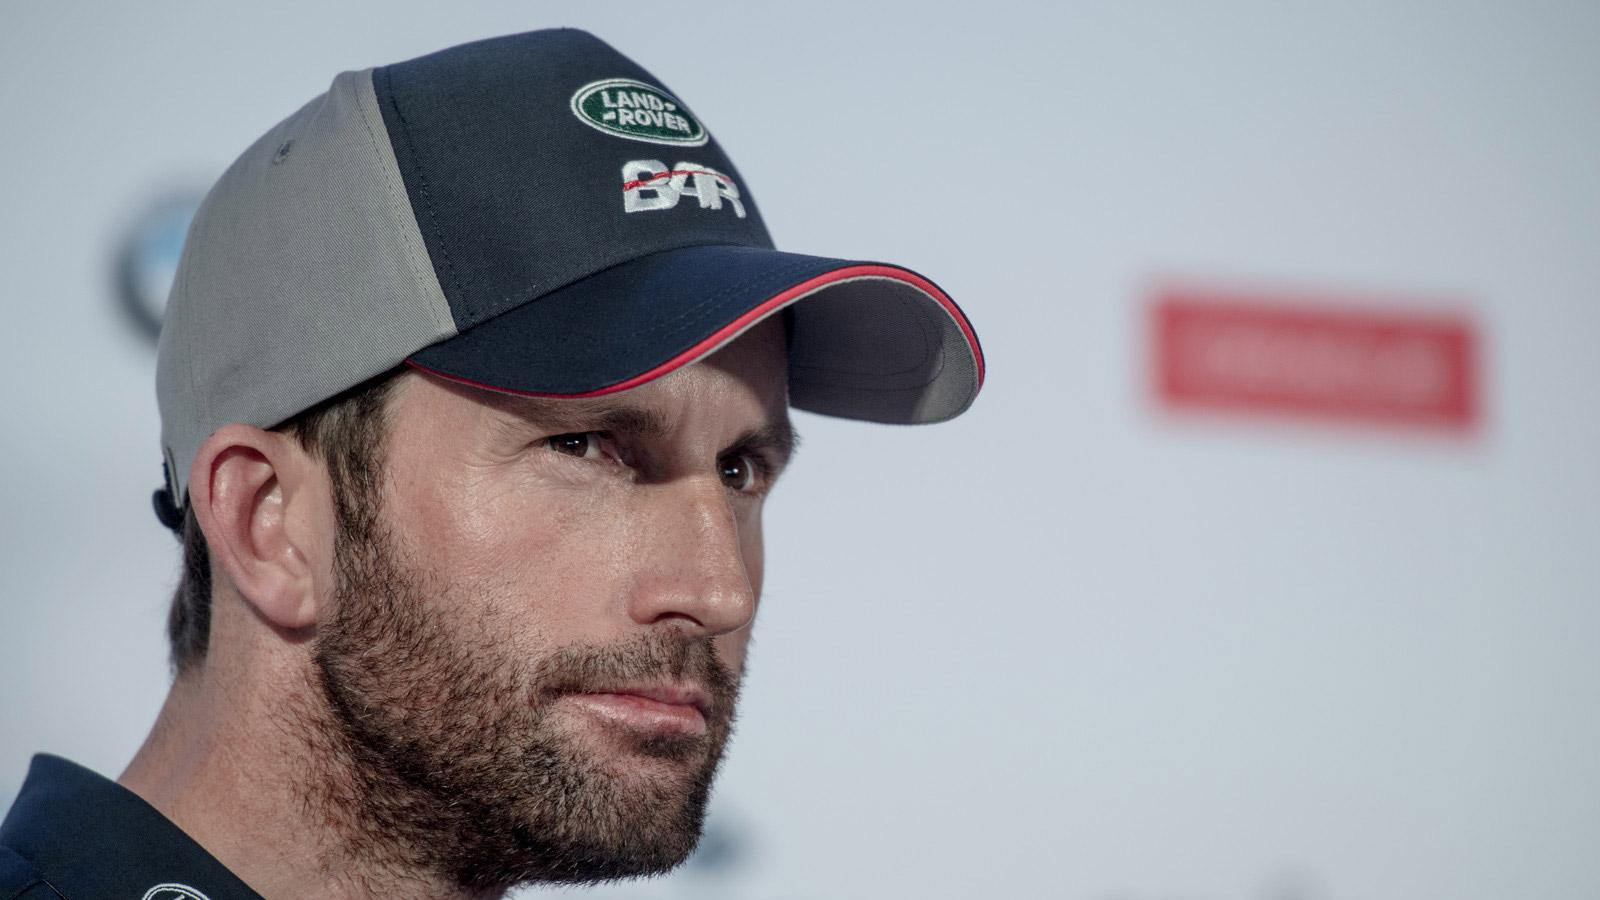 545806a27070b YmM4HPOkTSaT3CSYv9Yy America s-Cup-day-one-postponed-Ben-Ainslie-Land-Rover-BAR-press-conference-credit-ricardo-pinto-ACEA-2560x1440.jpg